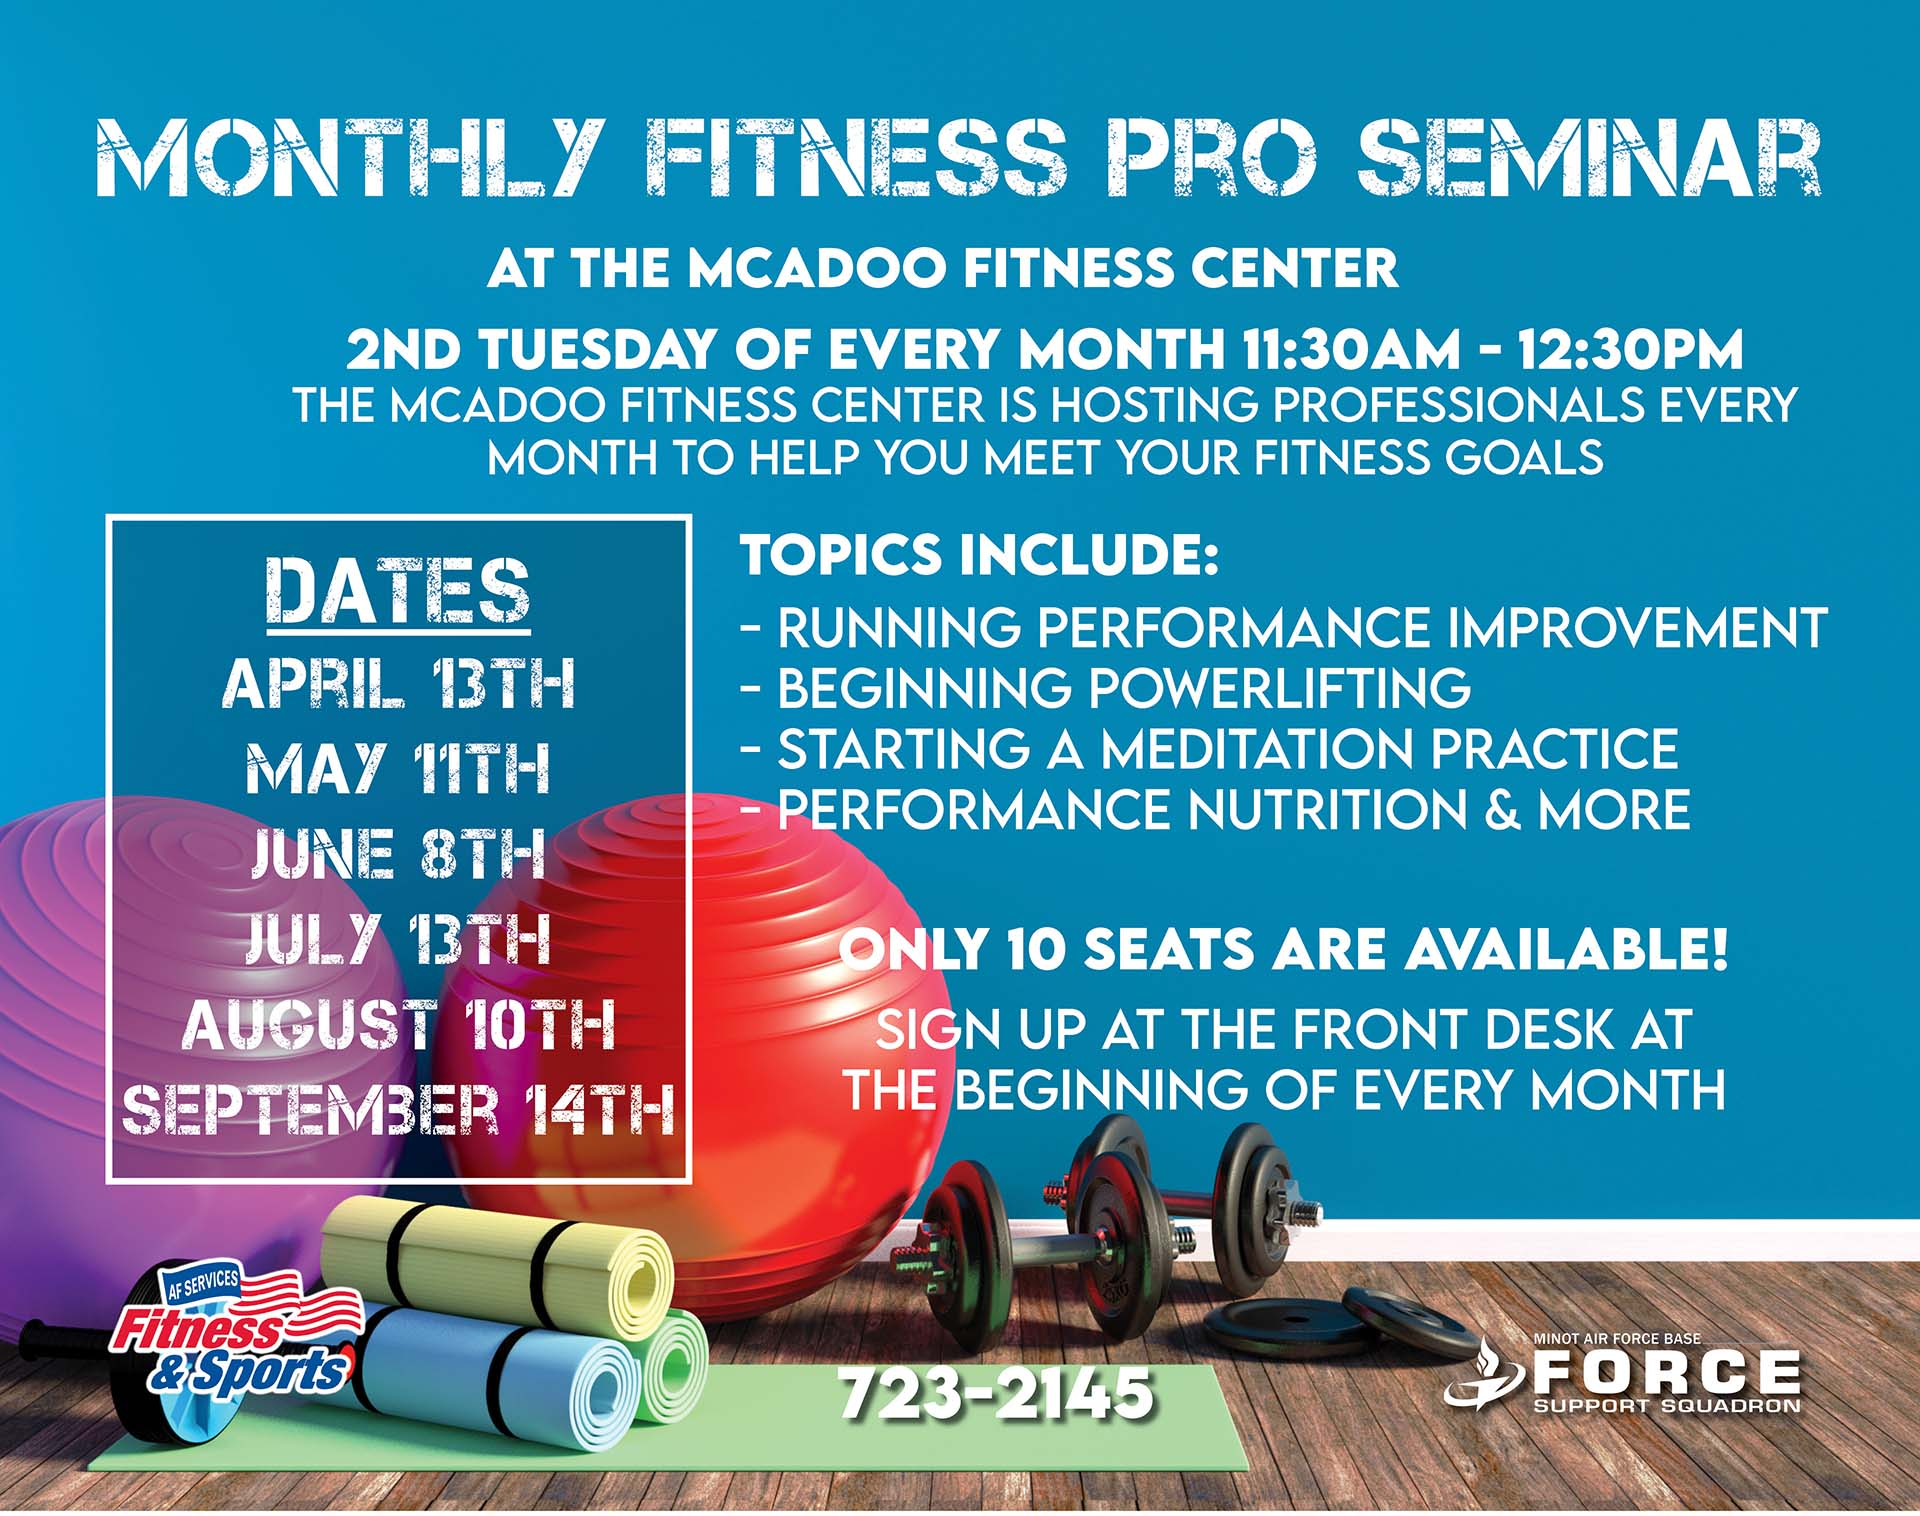 09.14 Monthly Fitness Pro Seminar